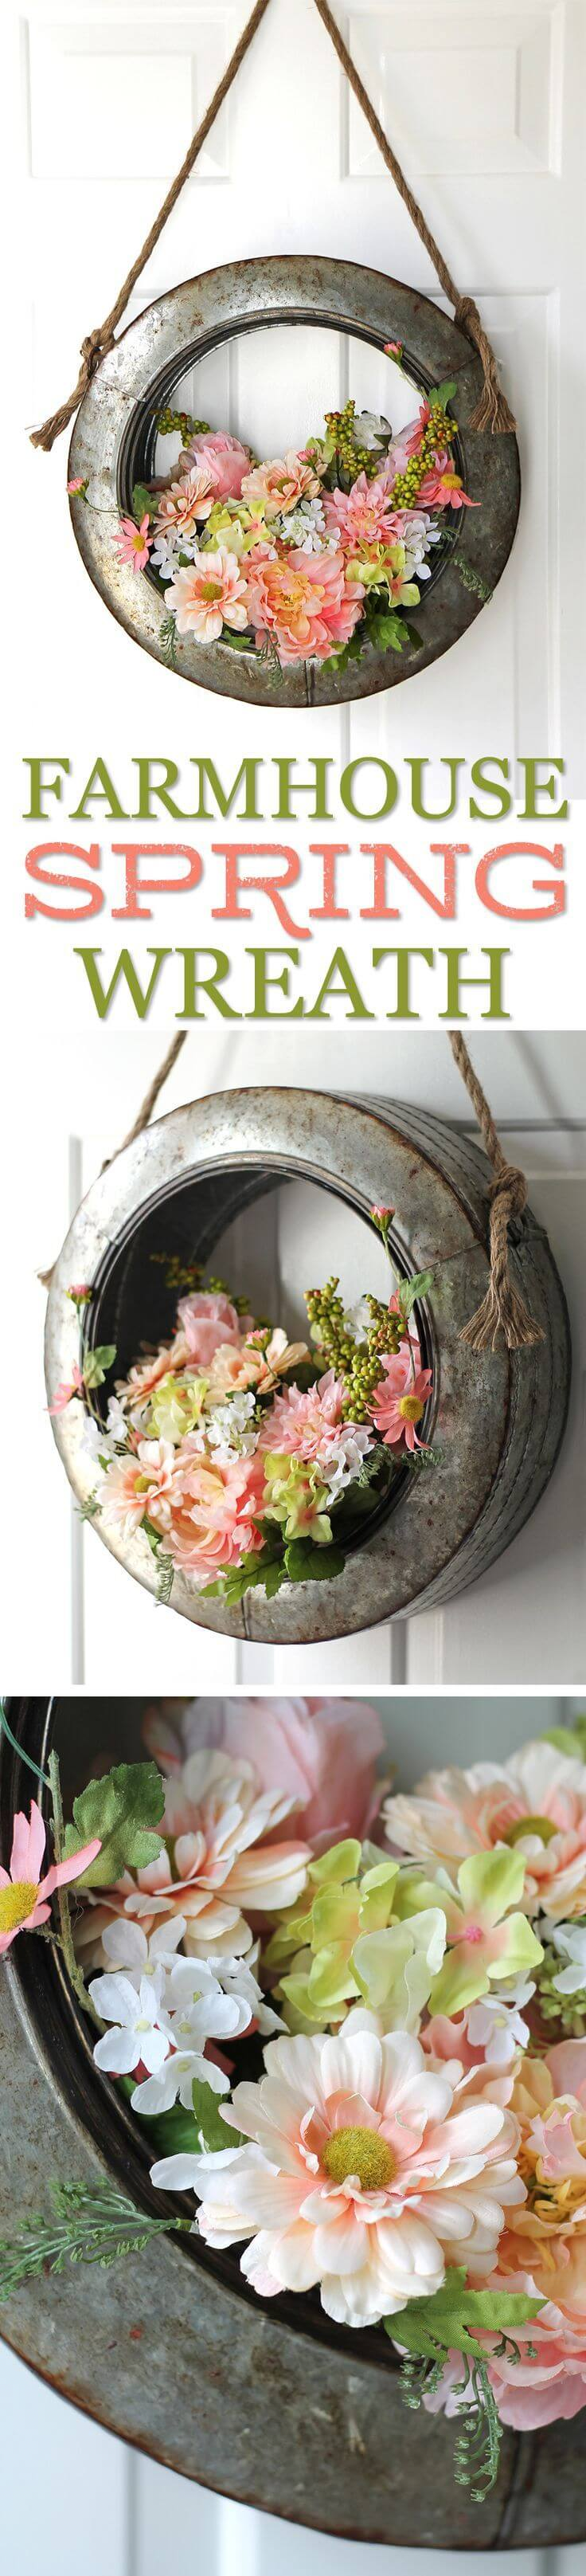 Unique Metal Wreath with Blooming Flowers